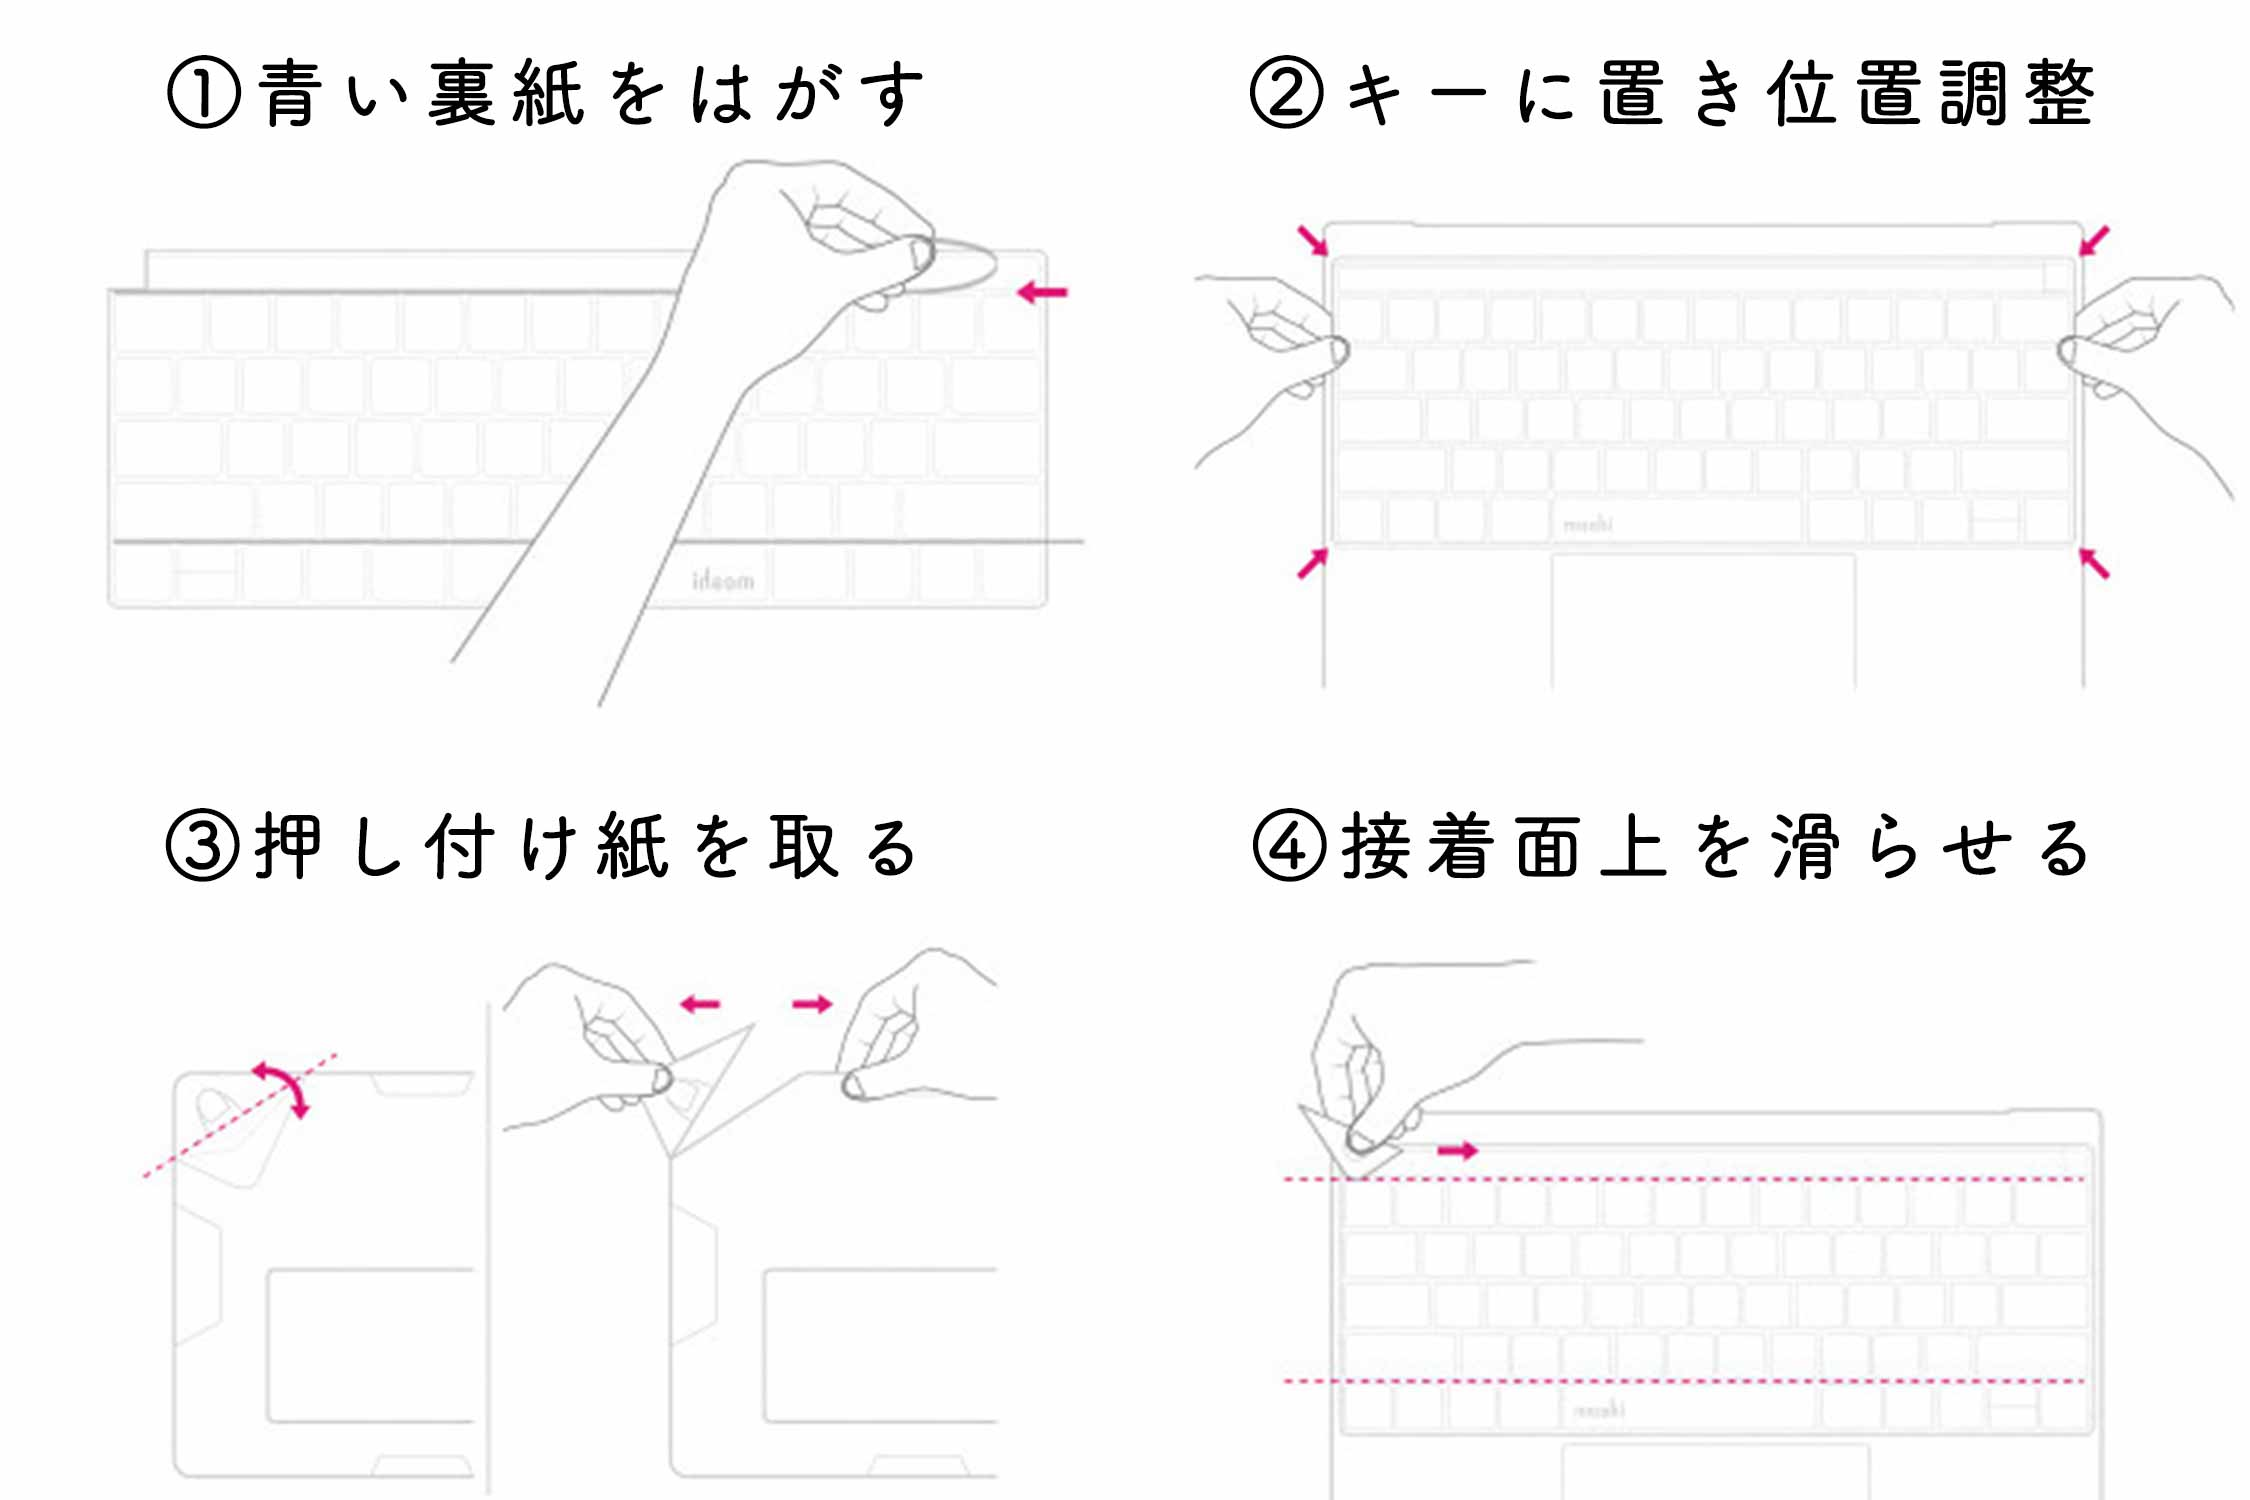 Keyboard-cover-pasting-method